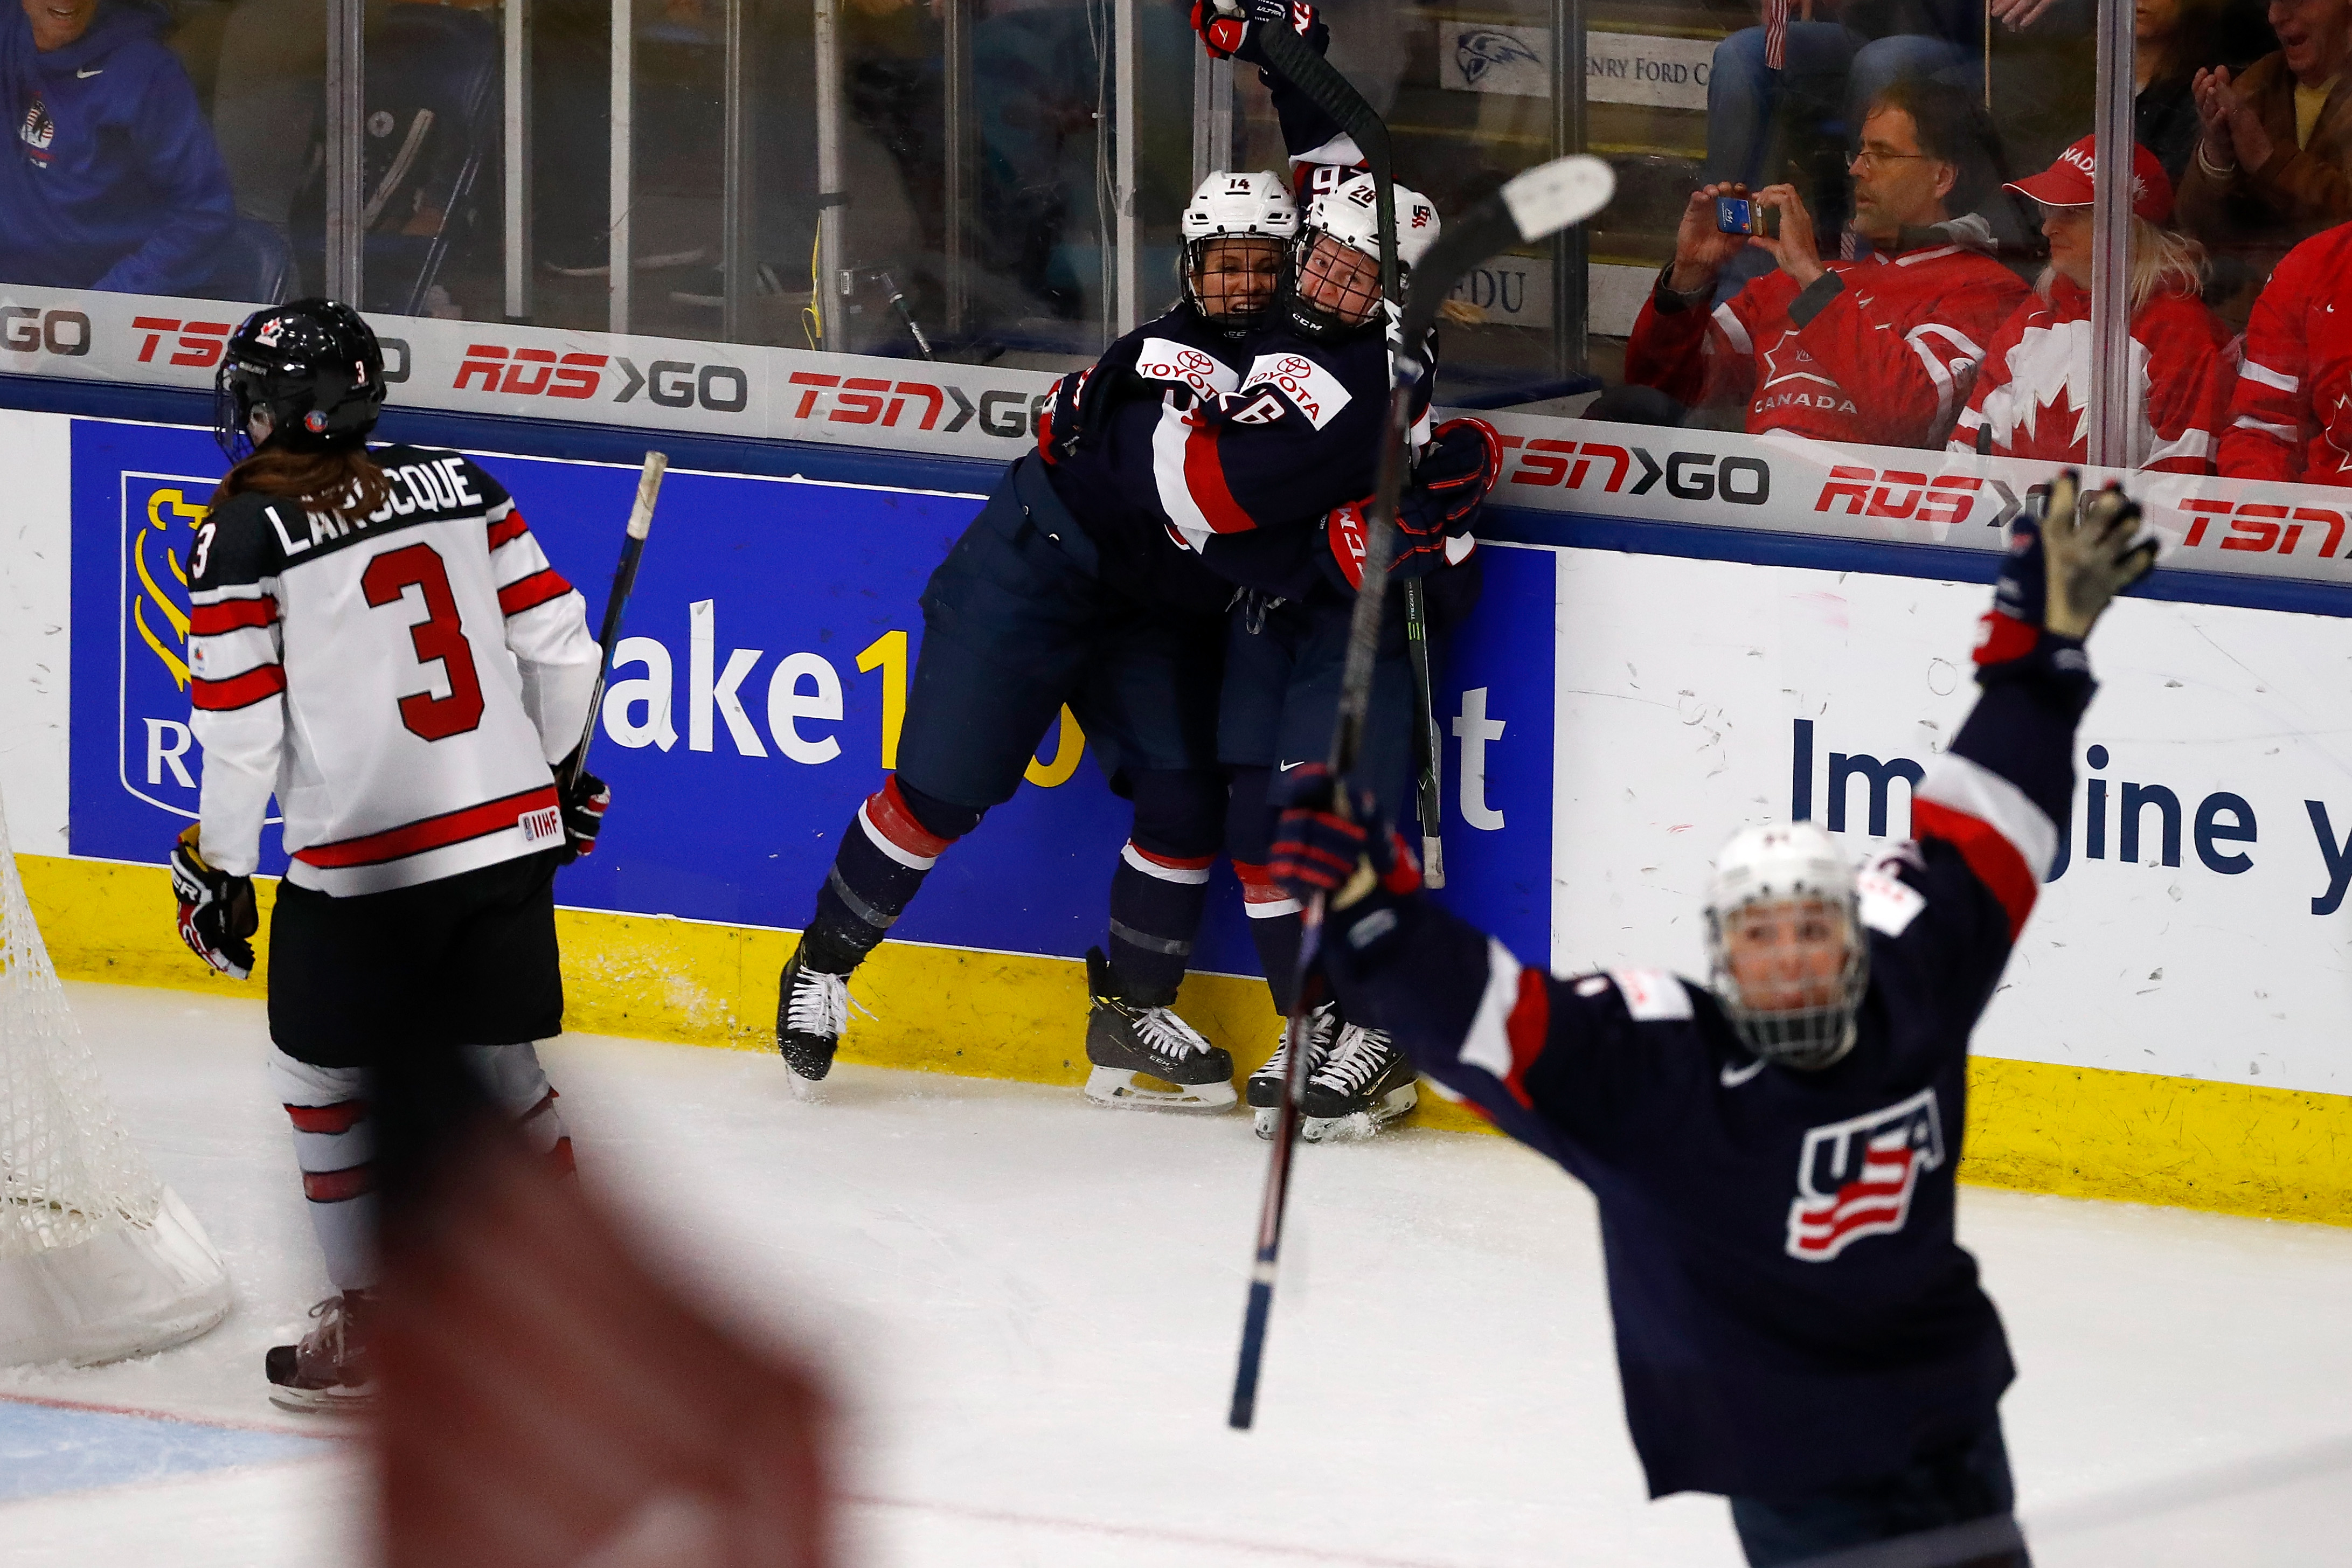 Brianna Decker #14 and Kendall Coyne #26 of the United States celebrate a game winning overtime goal at the 2017 IIHF Woman's World Championships at USA Hockey Arena on April 7, 2017 in Plymouth, Michigan. Gregory Shamus—Getty Images.